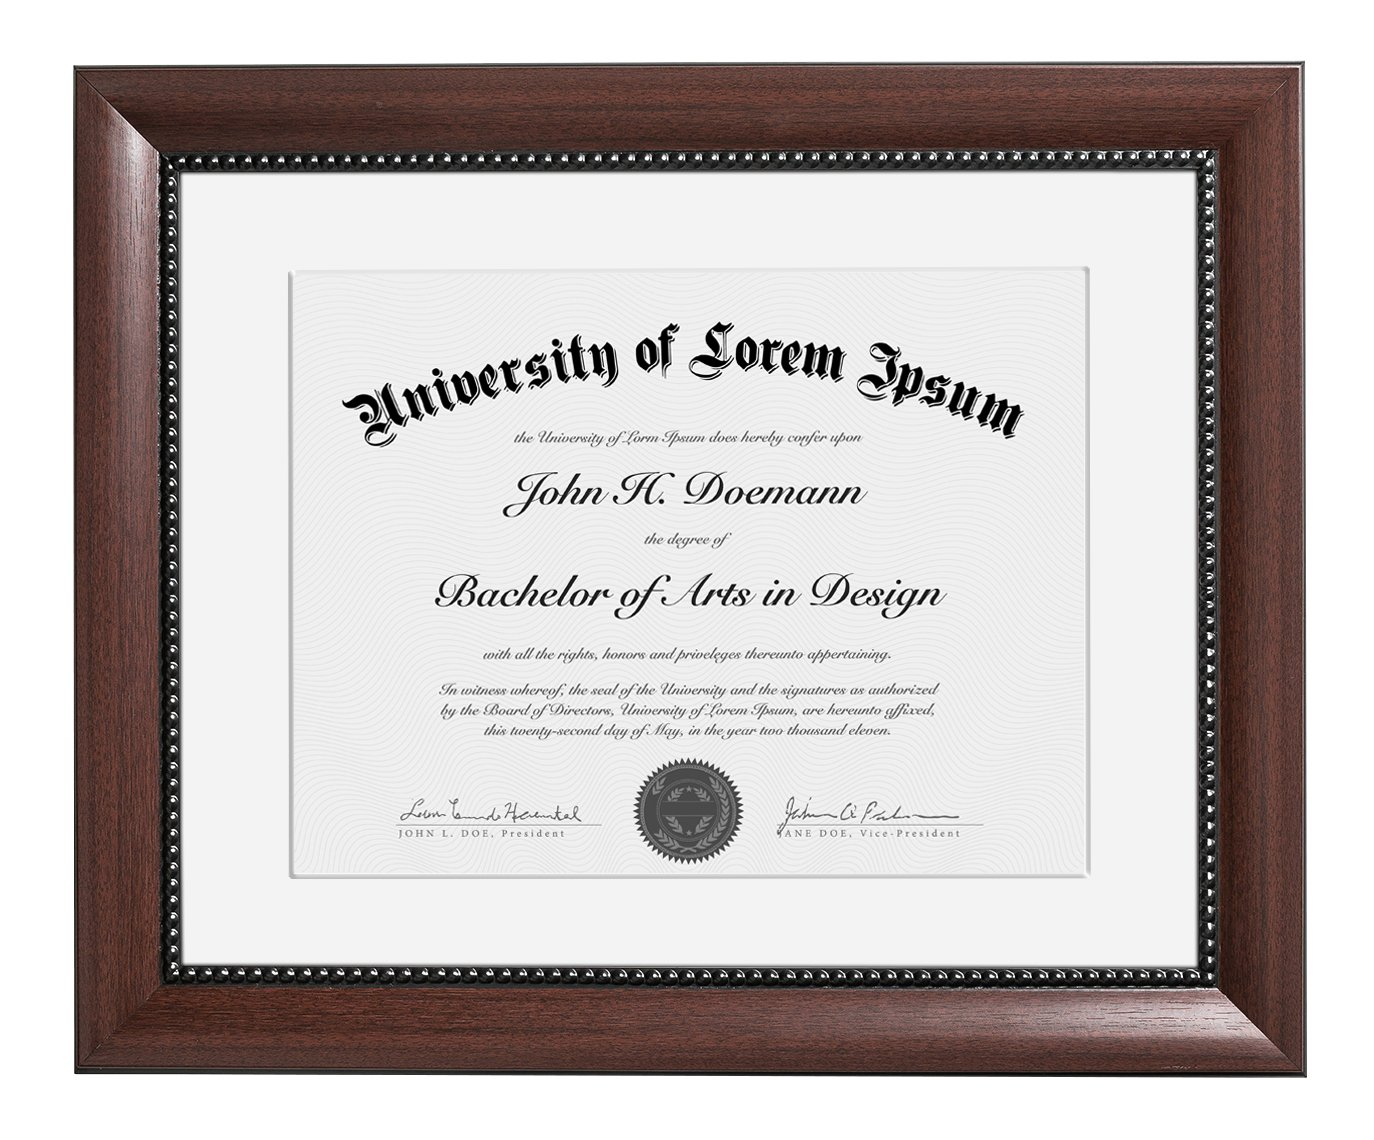 Americanflat 11x14 Mahogany Document Frame - Made to Display Certificates 8.5x11 with Mat and 11x14 without Mat, Classic Style, Mahogany Brown - Document Frames, Certificate Frames, Diploma Frames DO1114RGMA